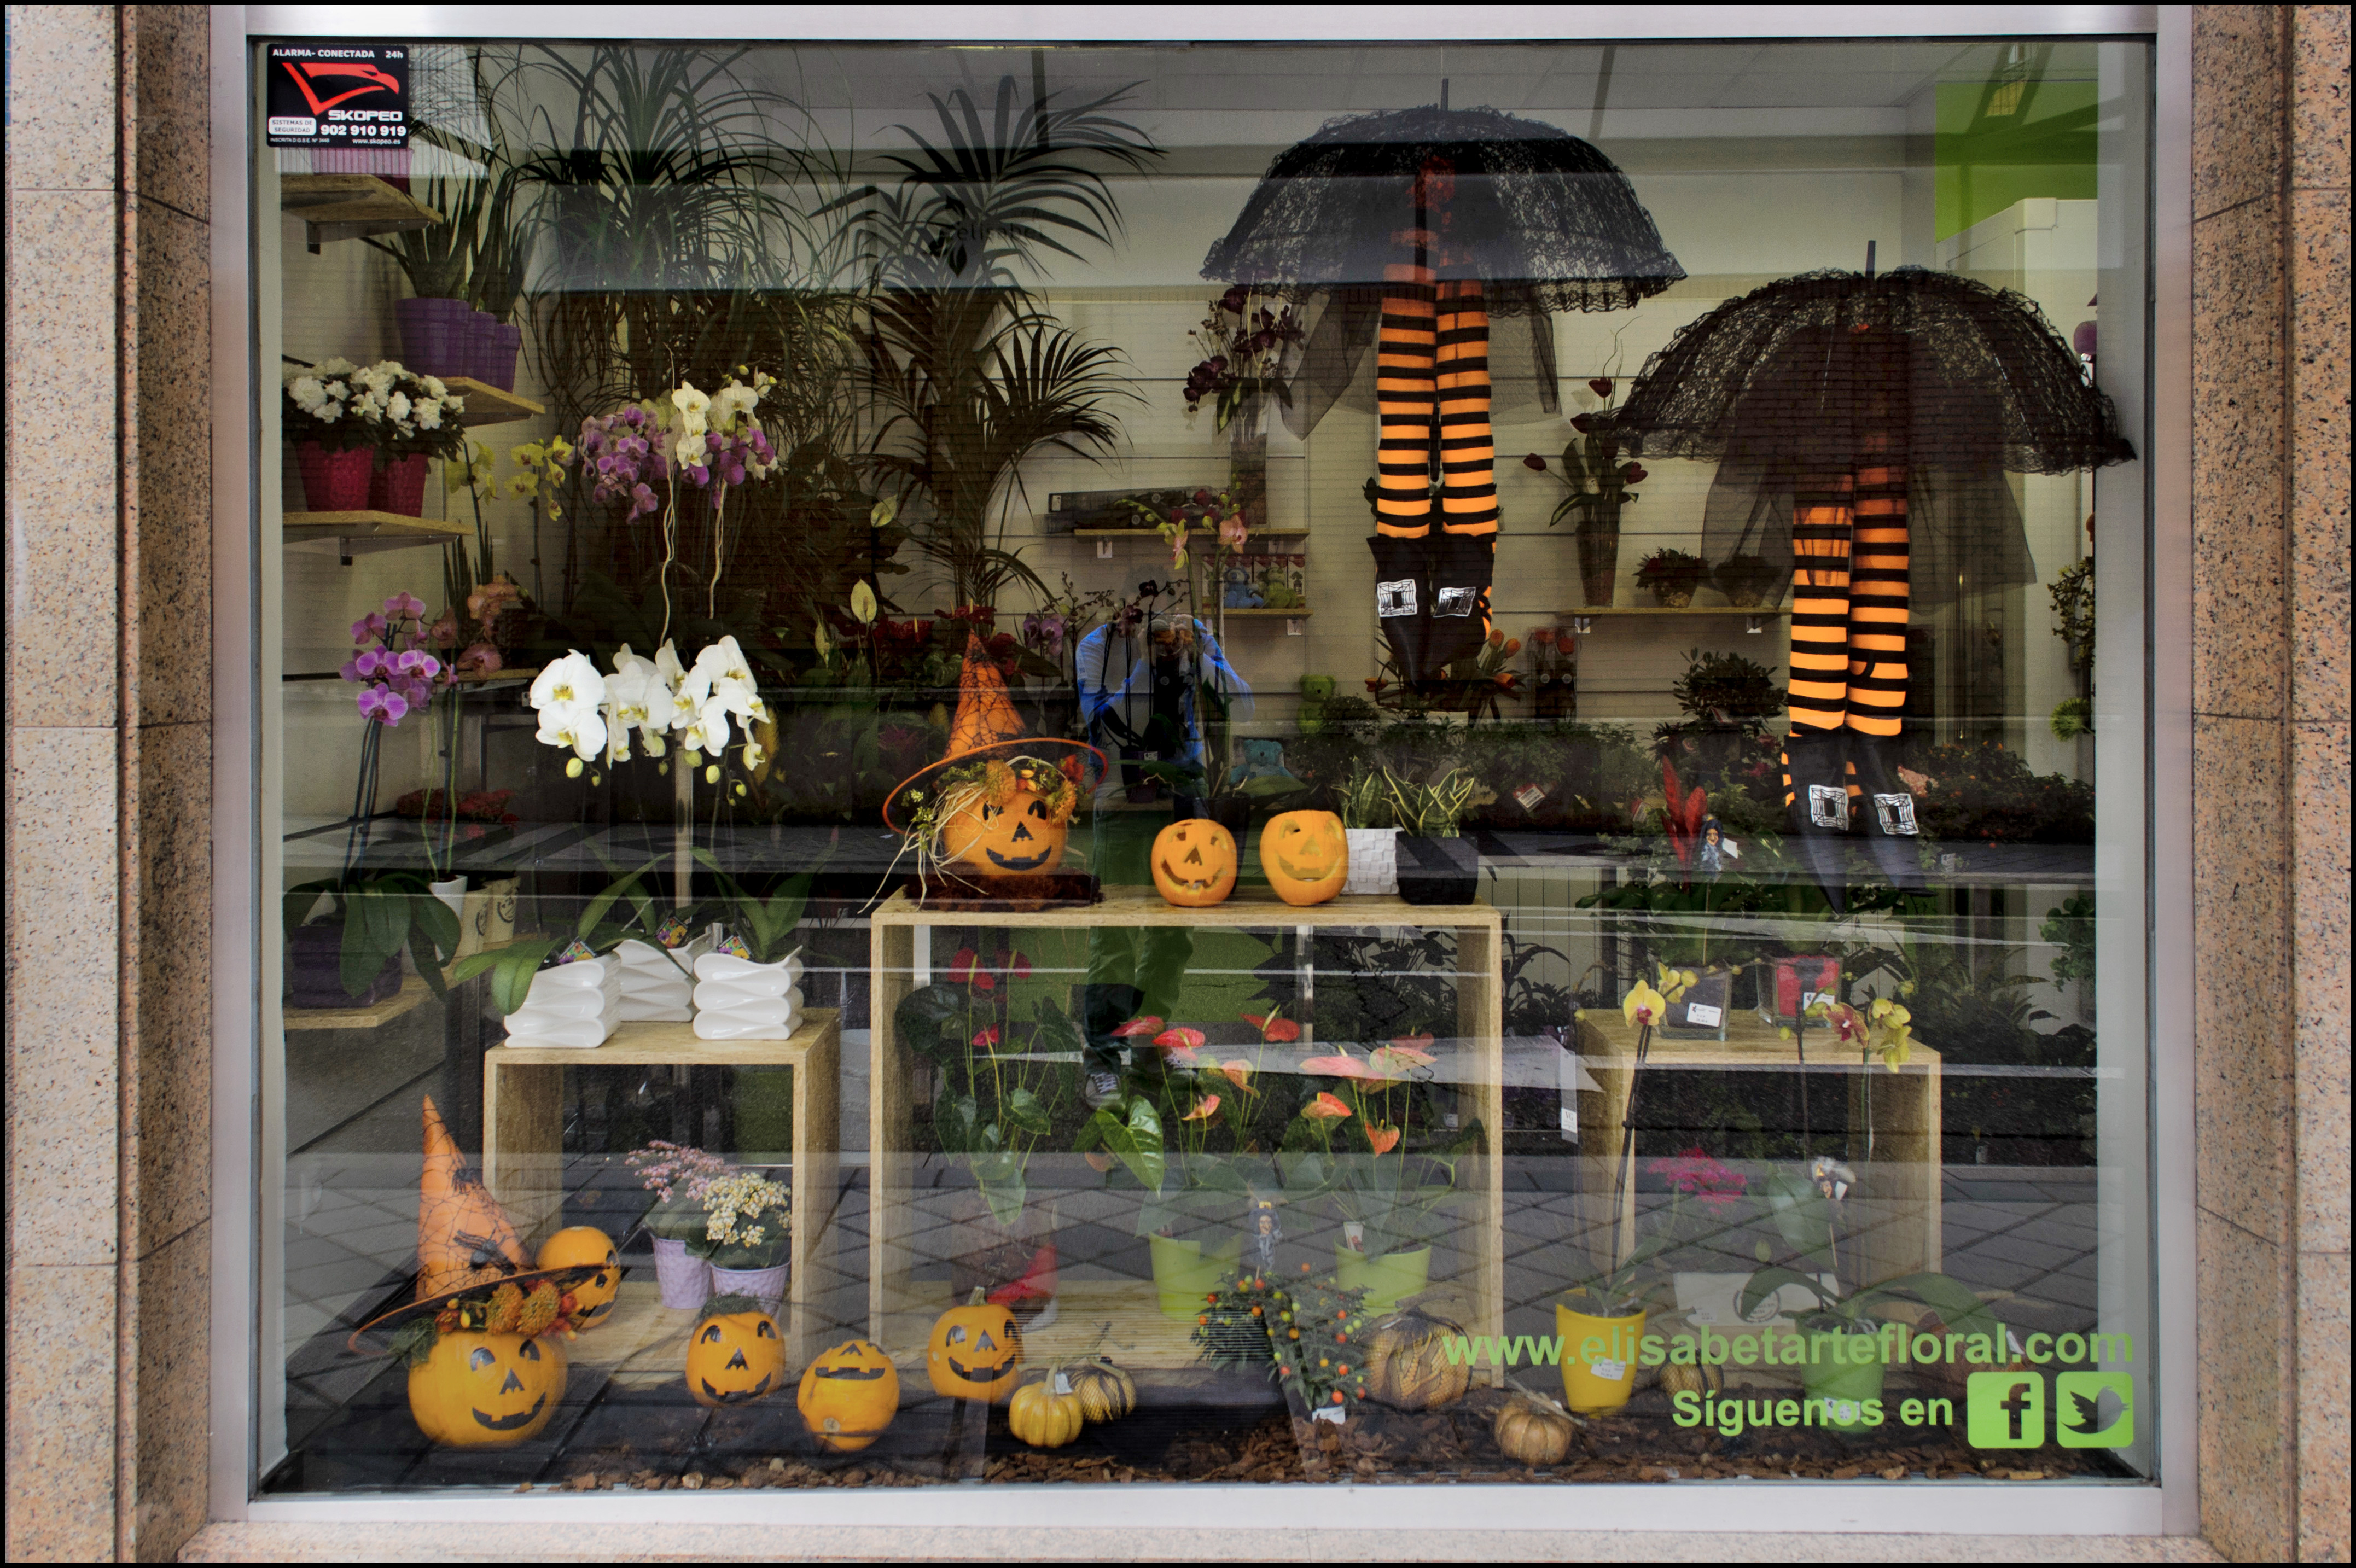 Halloween elisabet arte floral blog - Decoracion de escaparates ...